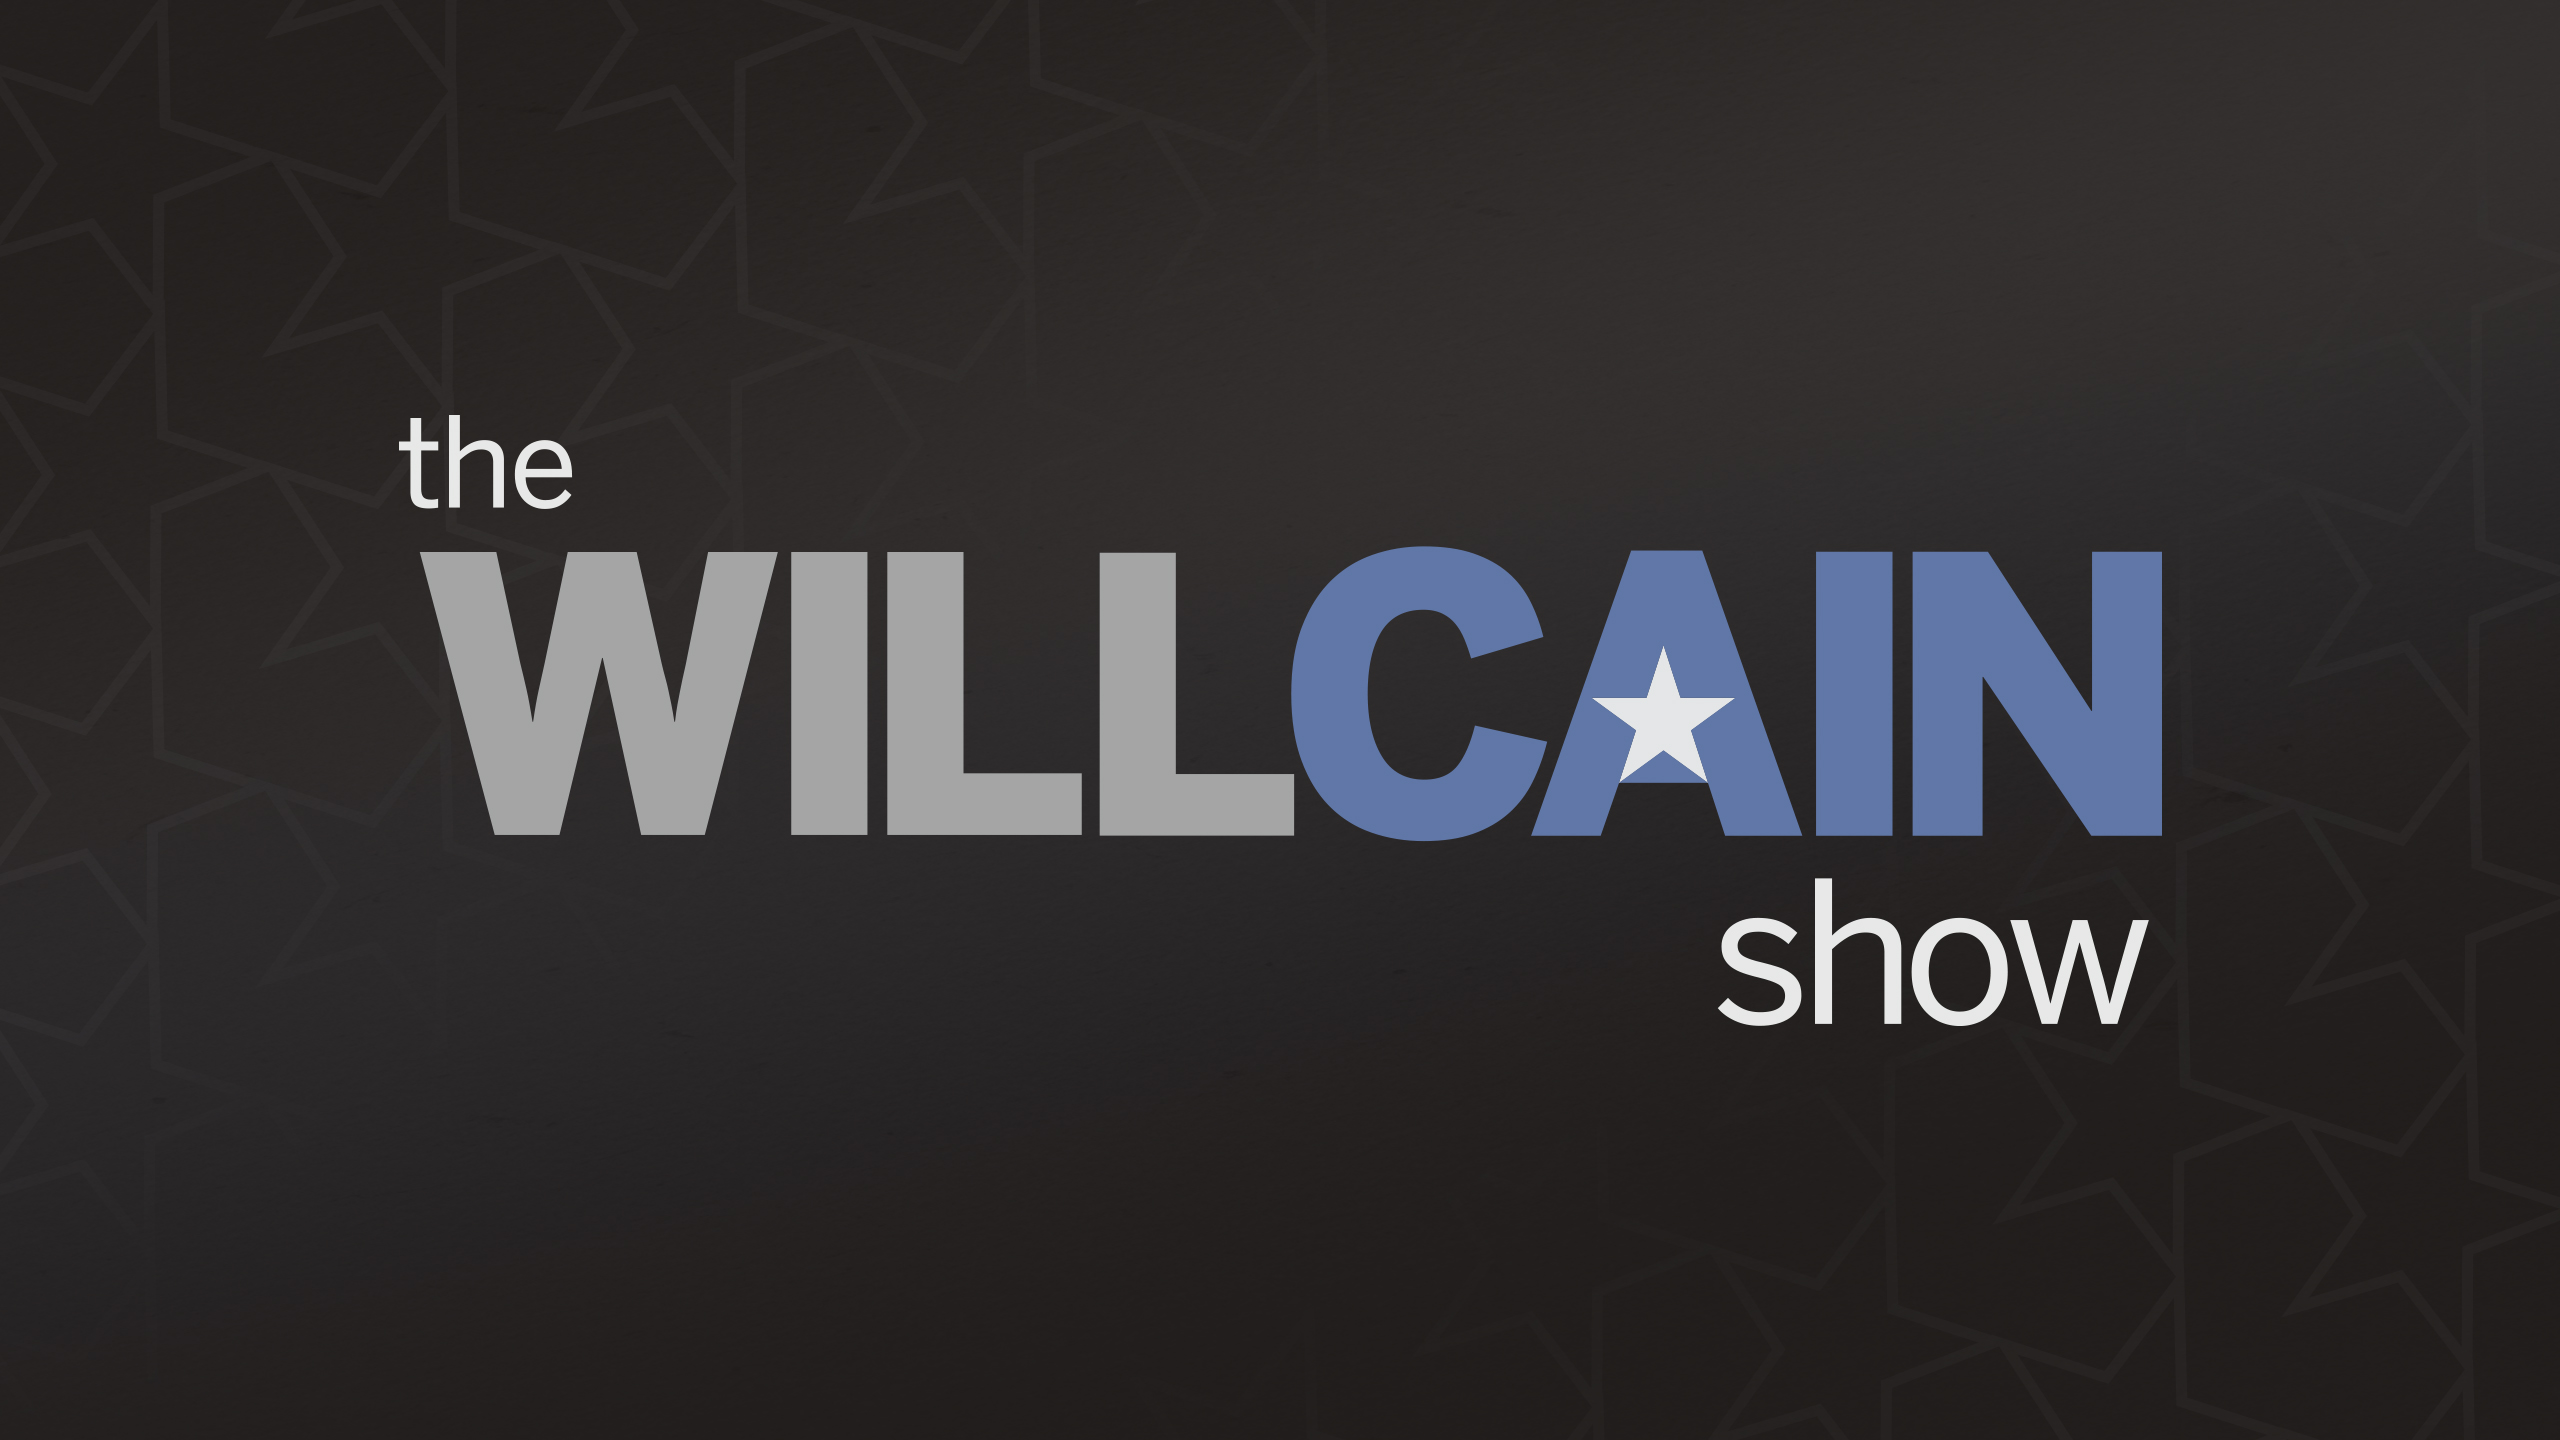 Thu, 11/15 - The Will Cain Show